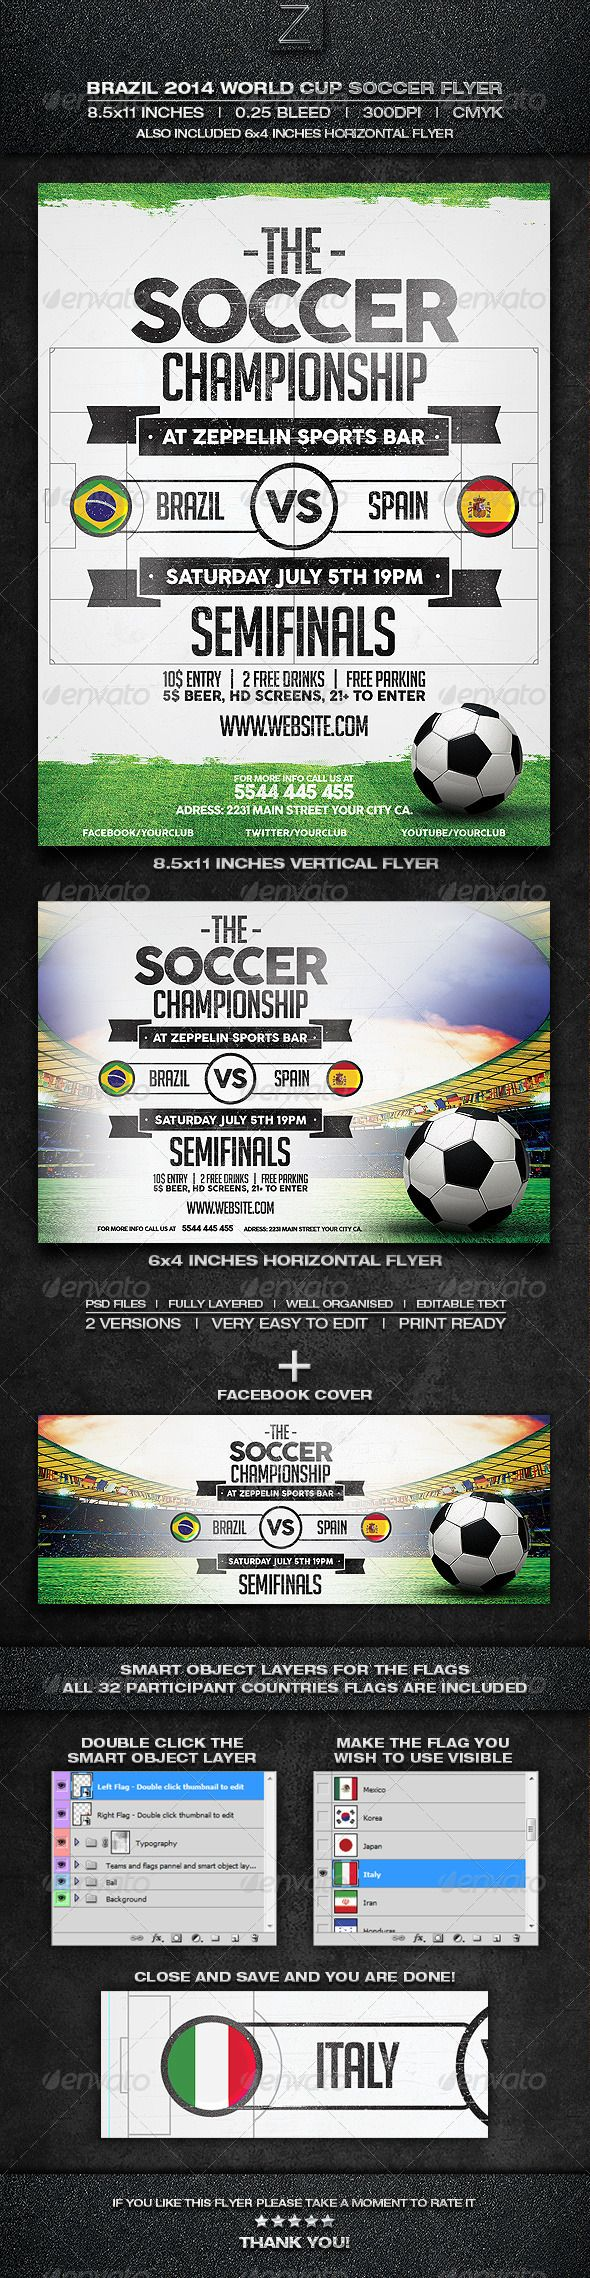 Brazil Soccer World Cup 2014 Flyer Template • Click here to download ! http://graphicriver.net/item/brazil-soccer-world-cup-2014-flyer-template/7755093?ref=pxcr